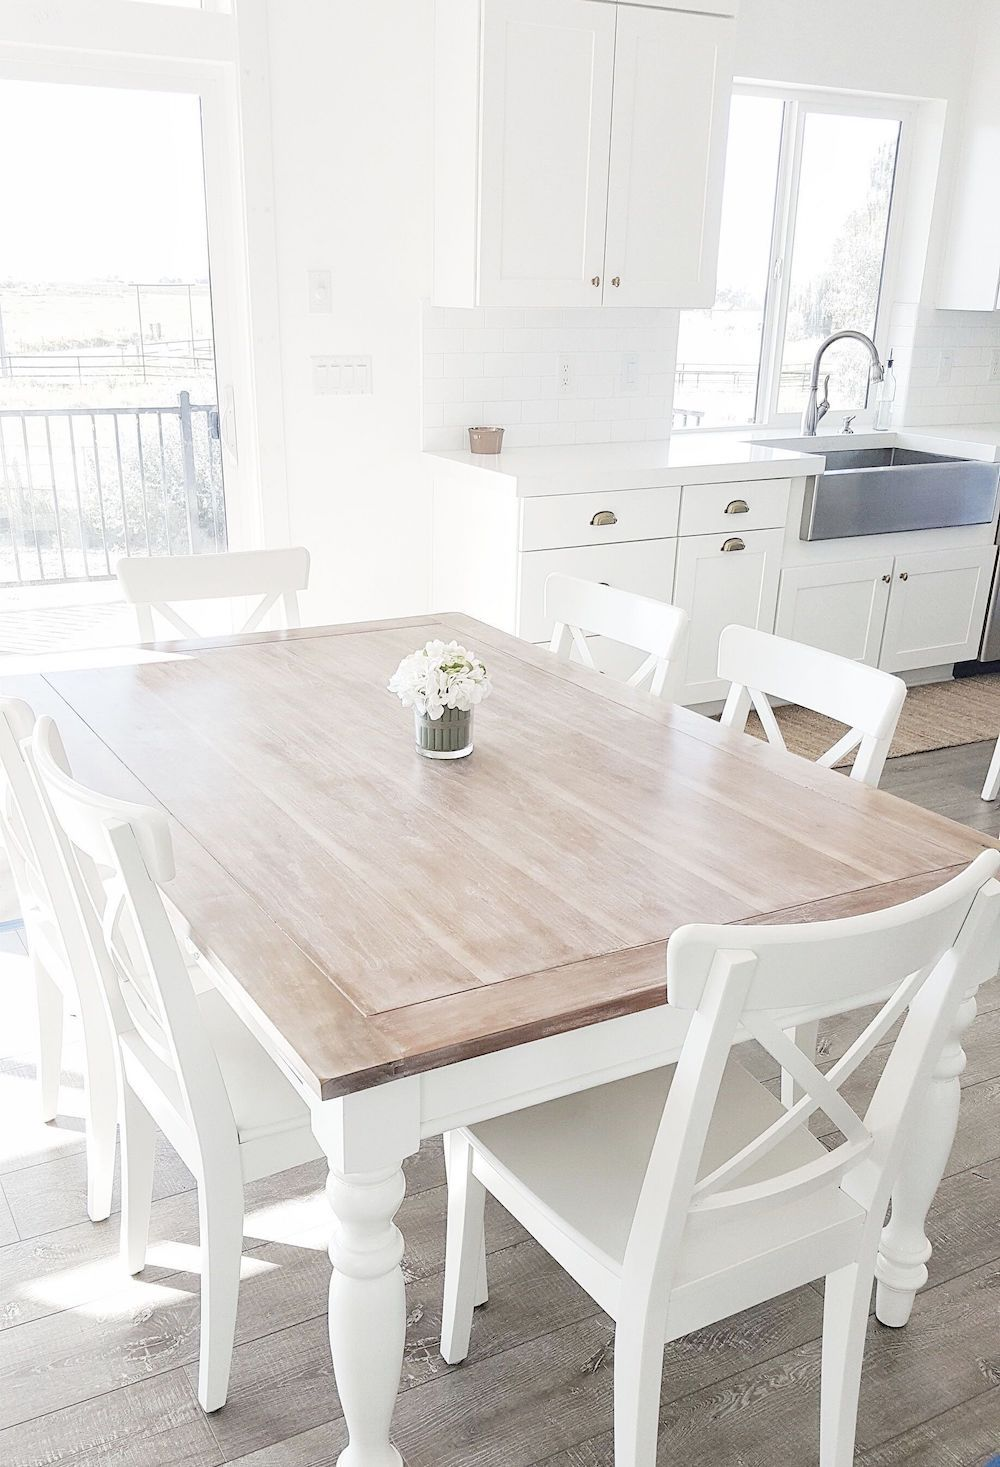 Country Dining Tables Are A Charming Addition To Any Country Dining Room When Designing A Countrysi Country Dining Tables Dining Room Small White Dining Table White kitchen bistro sets